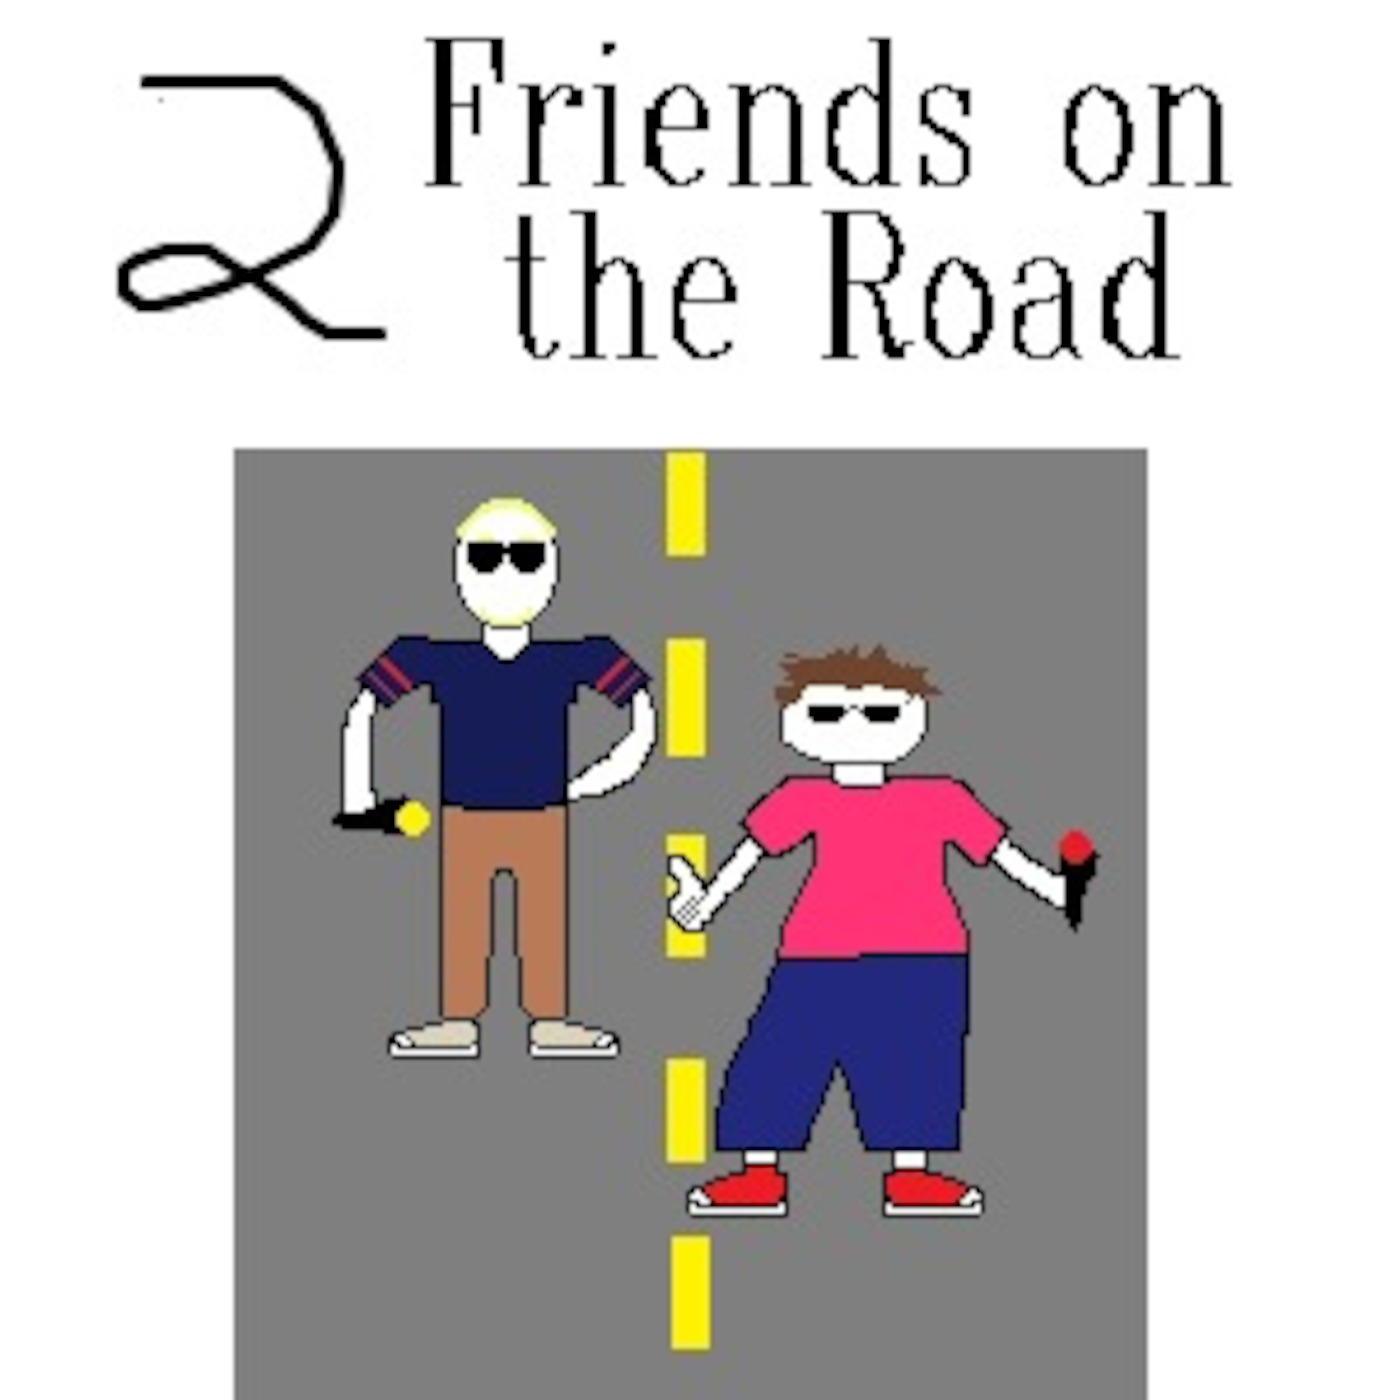 2 Friends On The Road